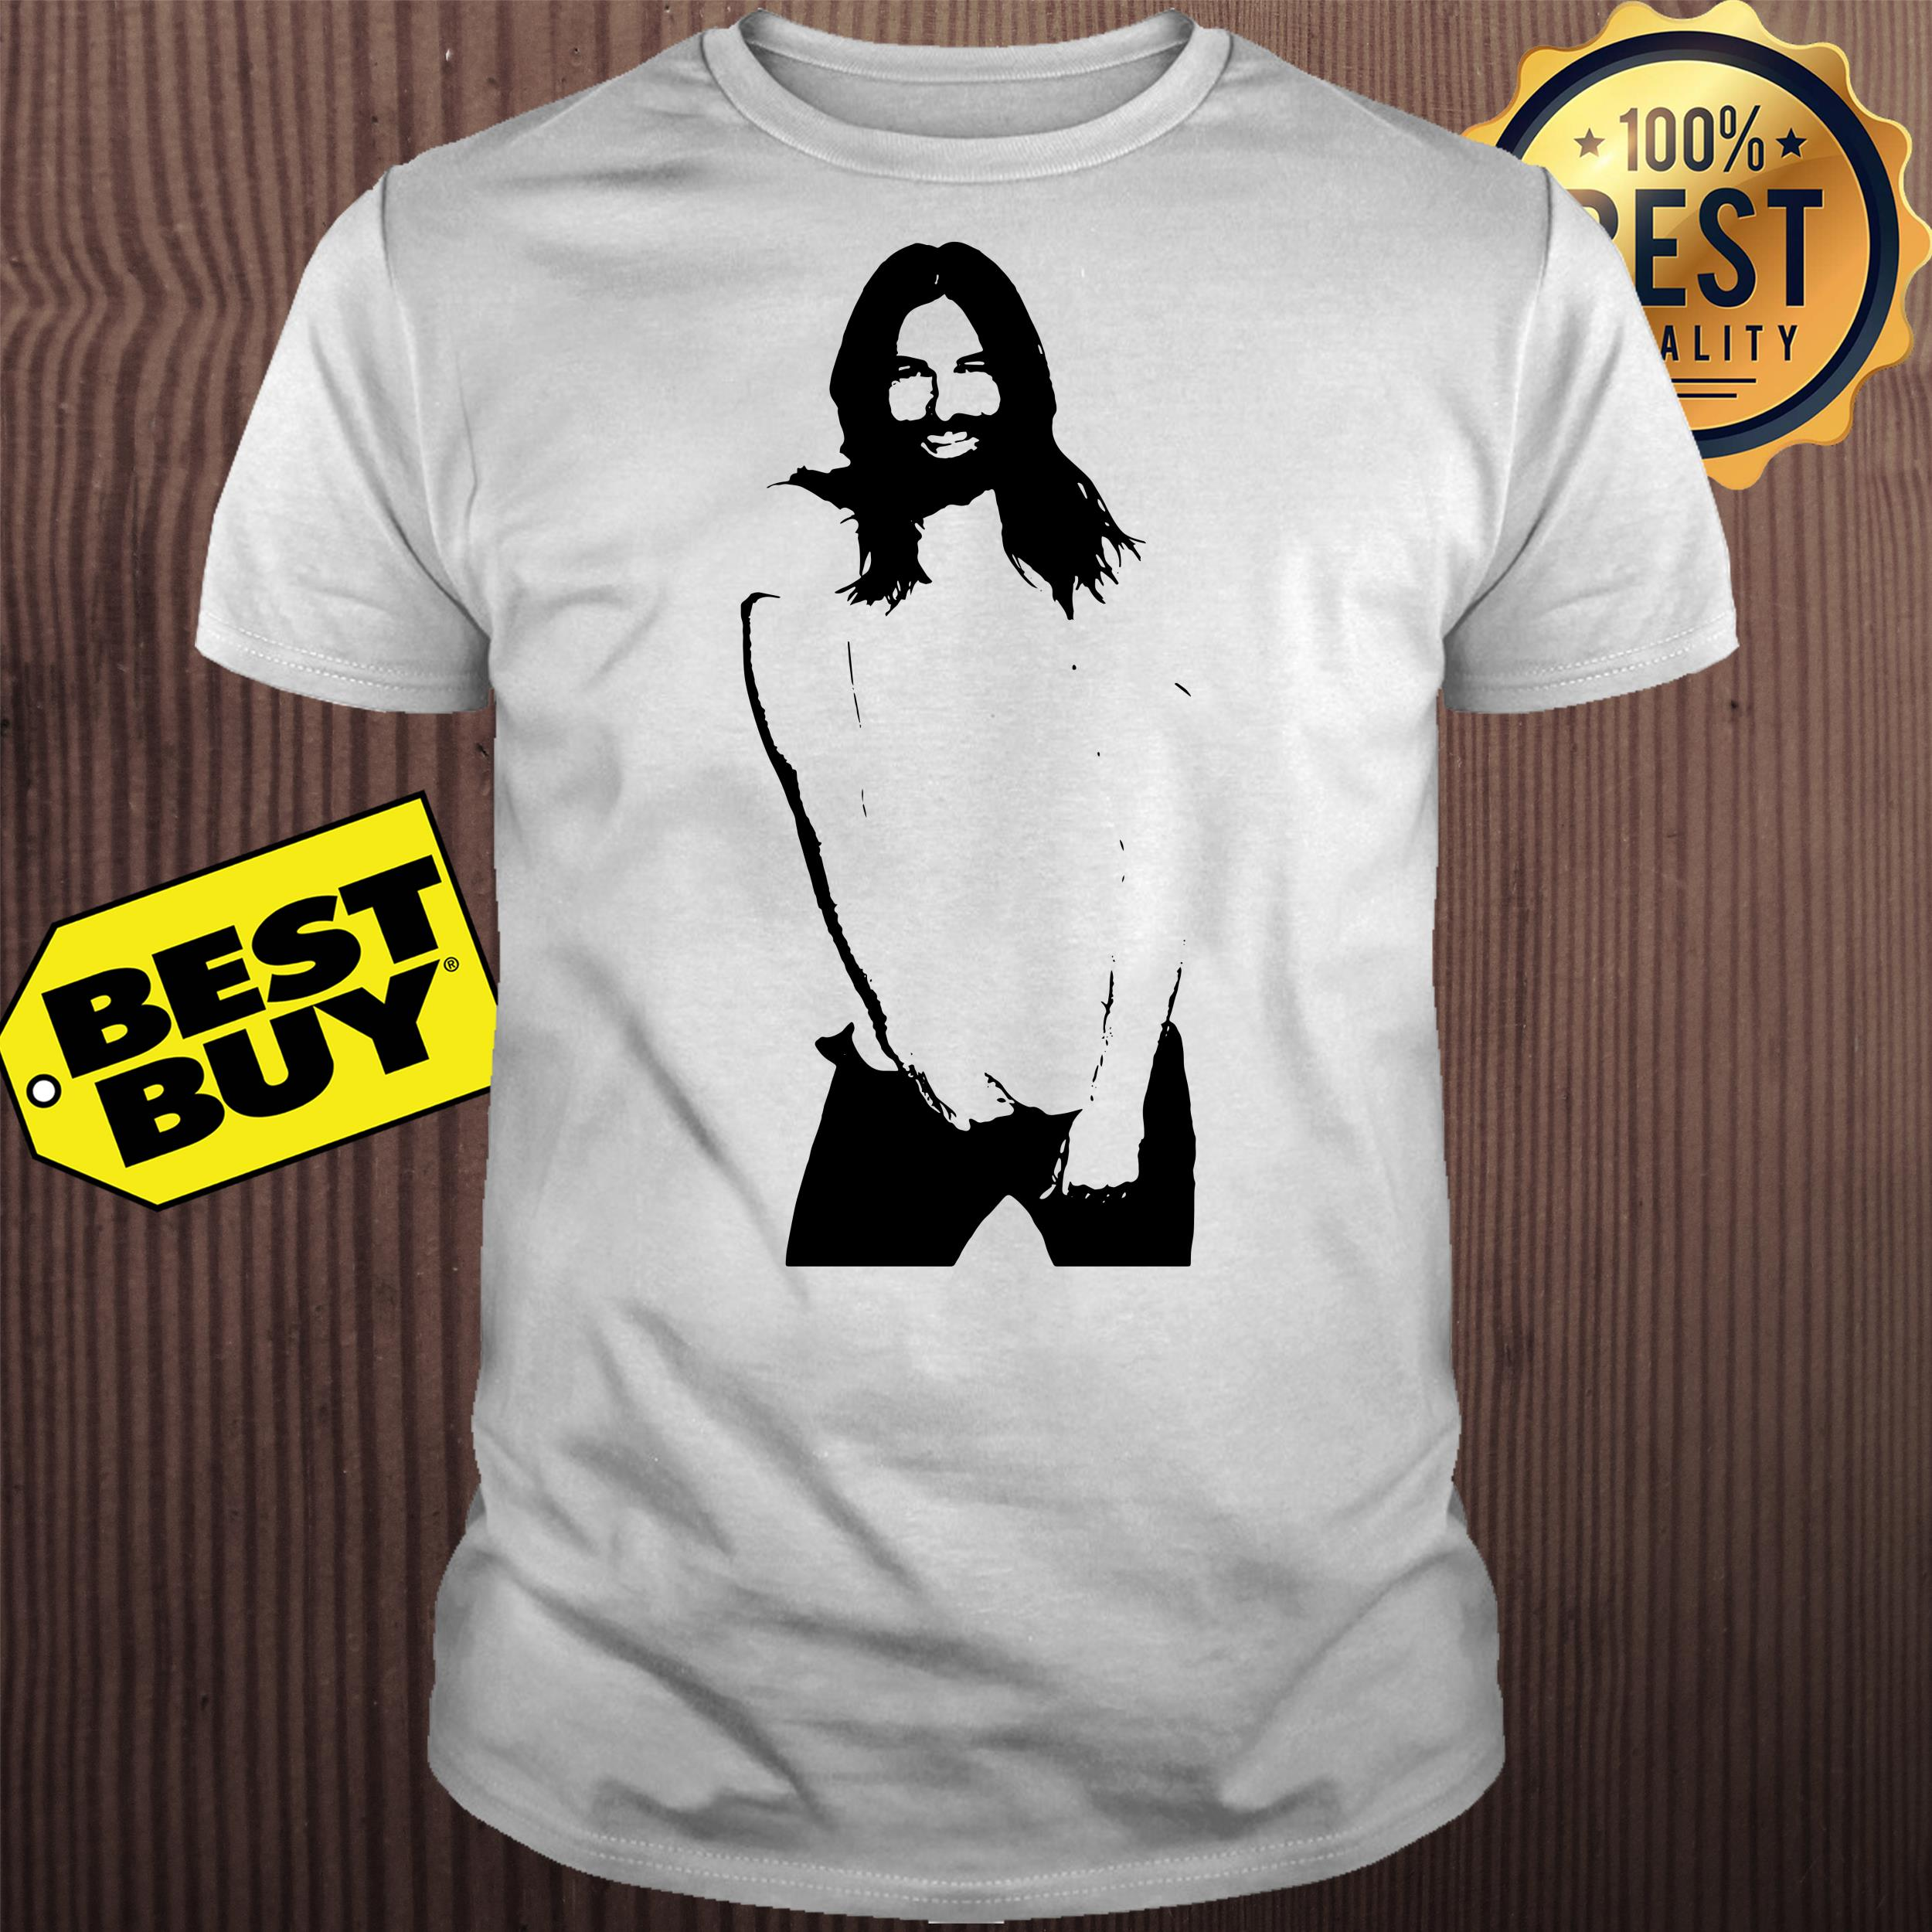 Official Jonathan Van Ness shirt